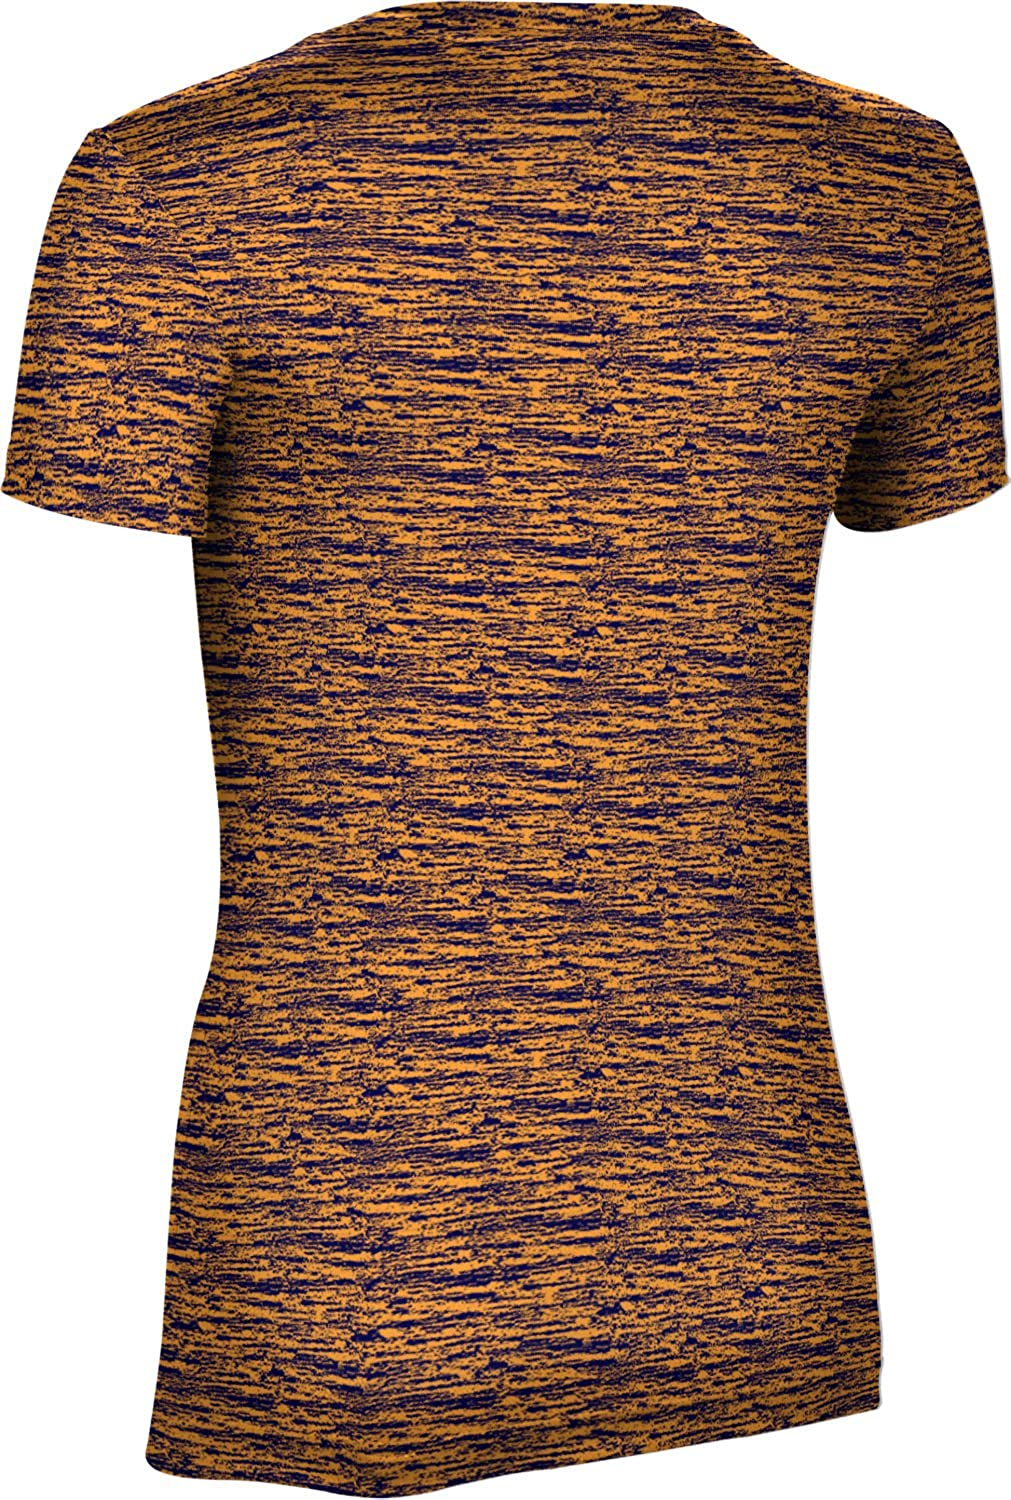 ProSphere Women's USS Laboon Military Brushed Tech Tee